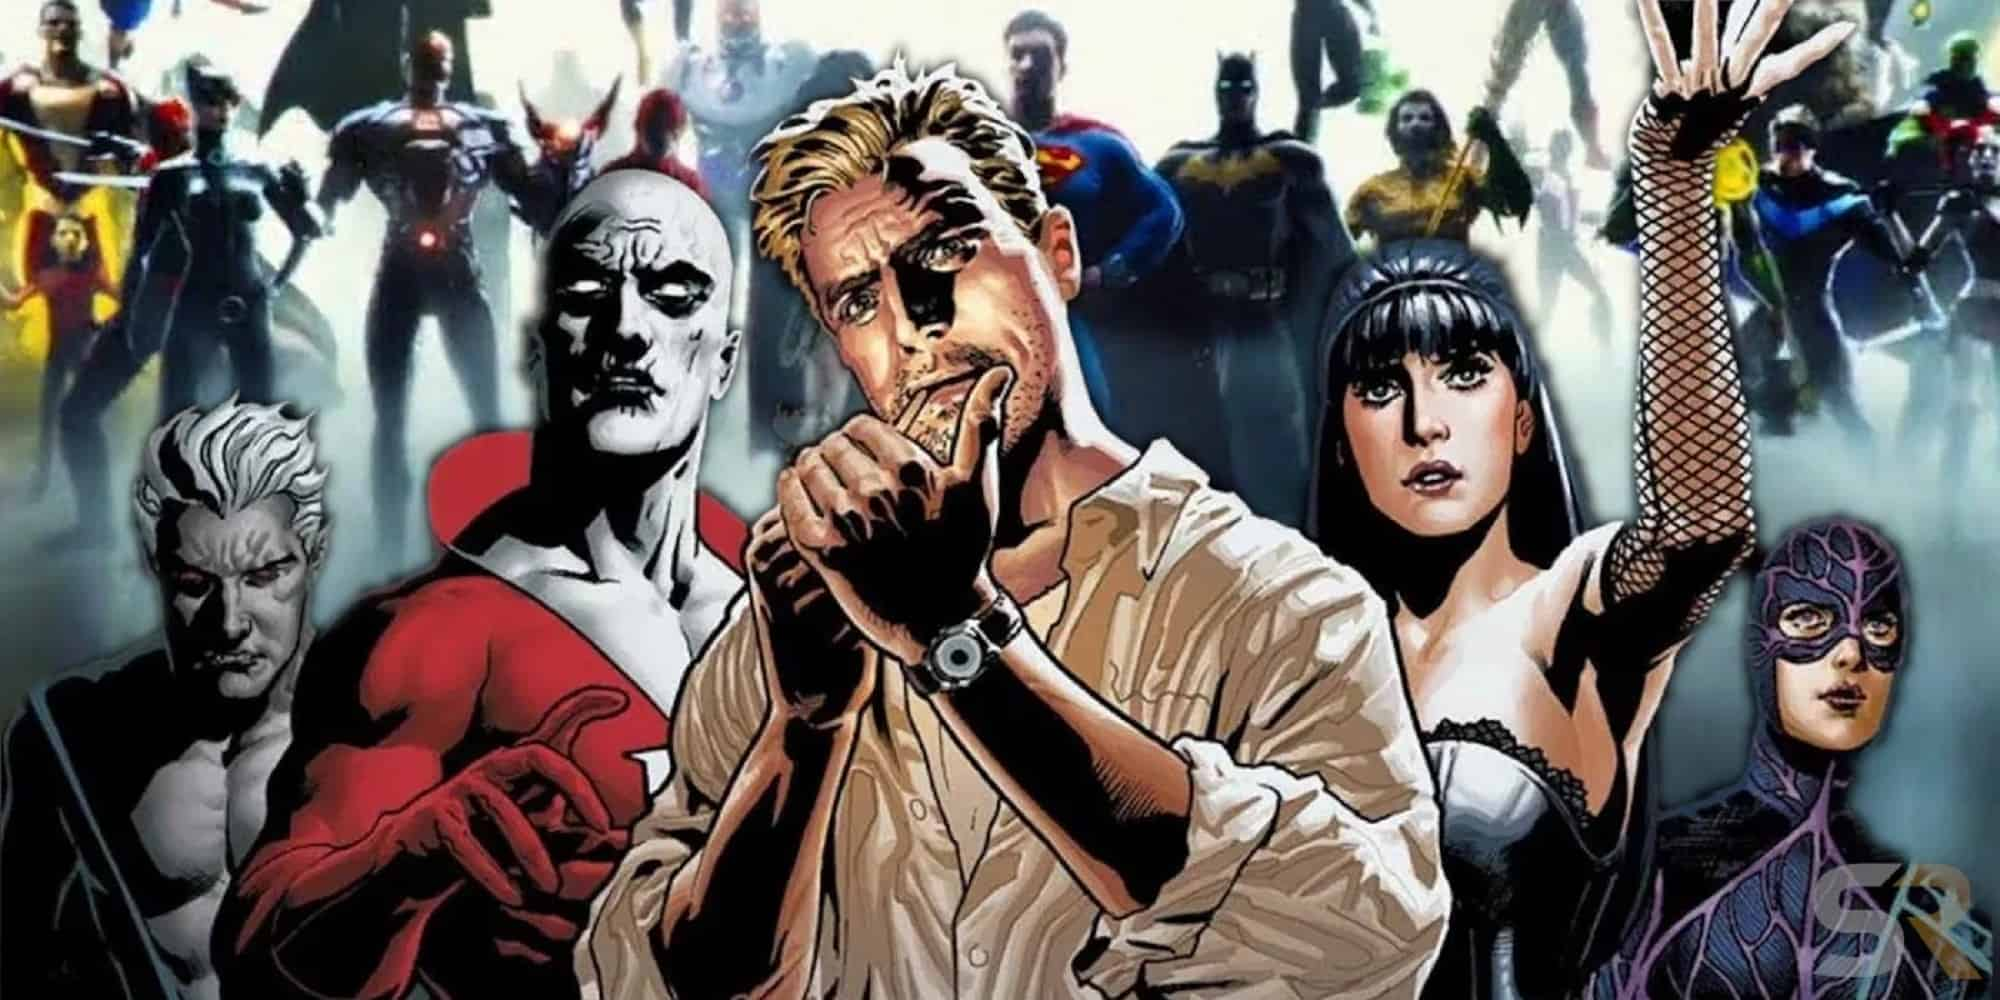 JJ Abrams Justice League Dark HBO Max featured